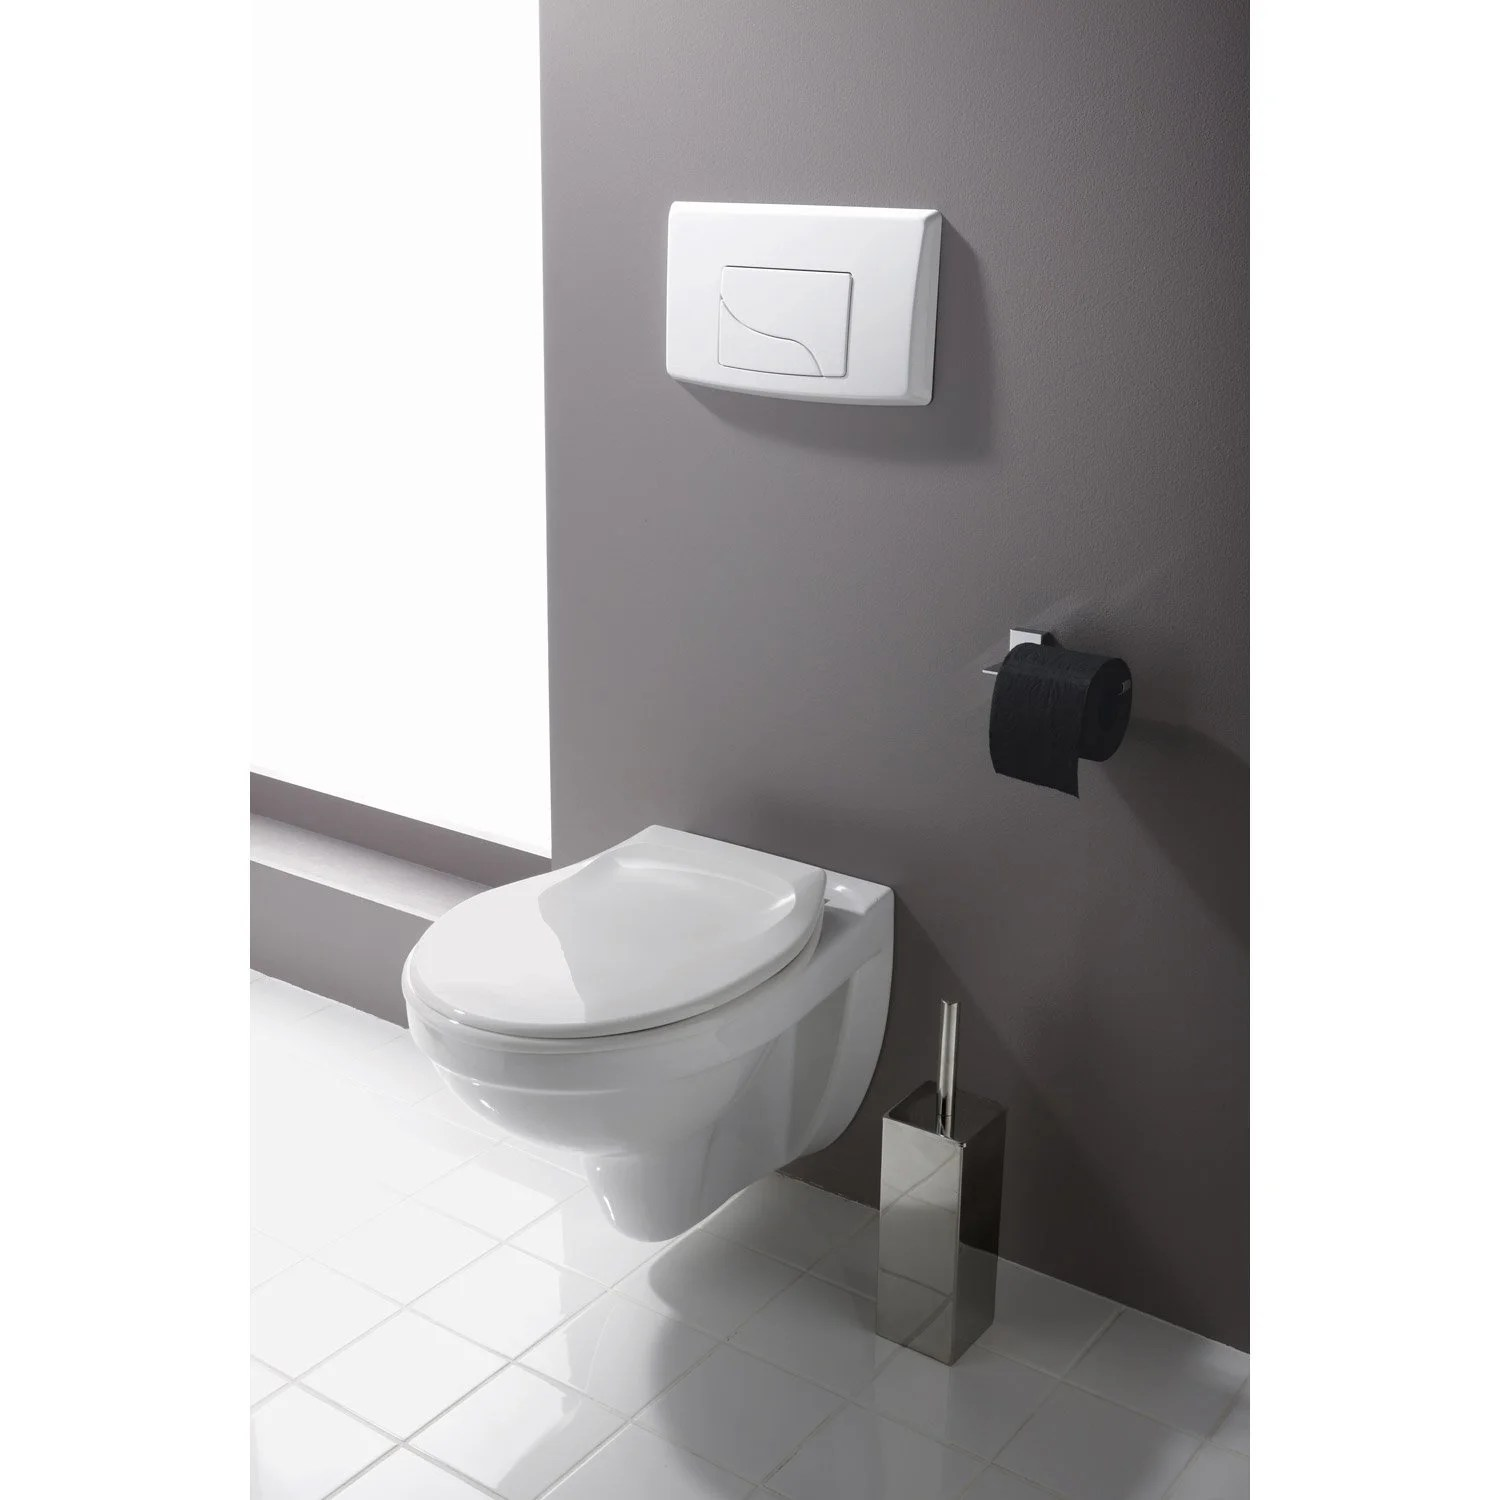 Toilette Wc Lapeyre Wc Suspendu Lapeyre Pack Wc Suspendu Grohe